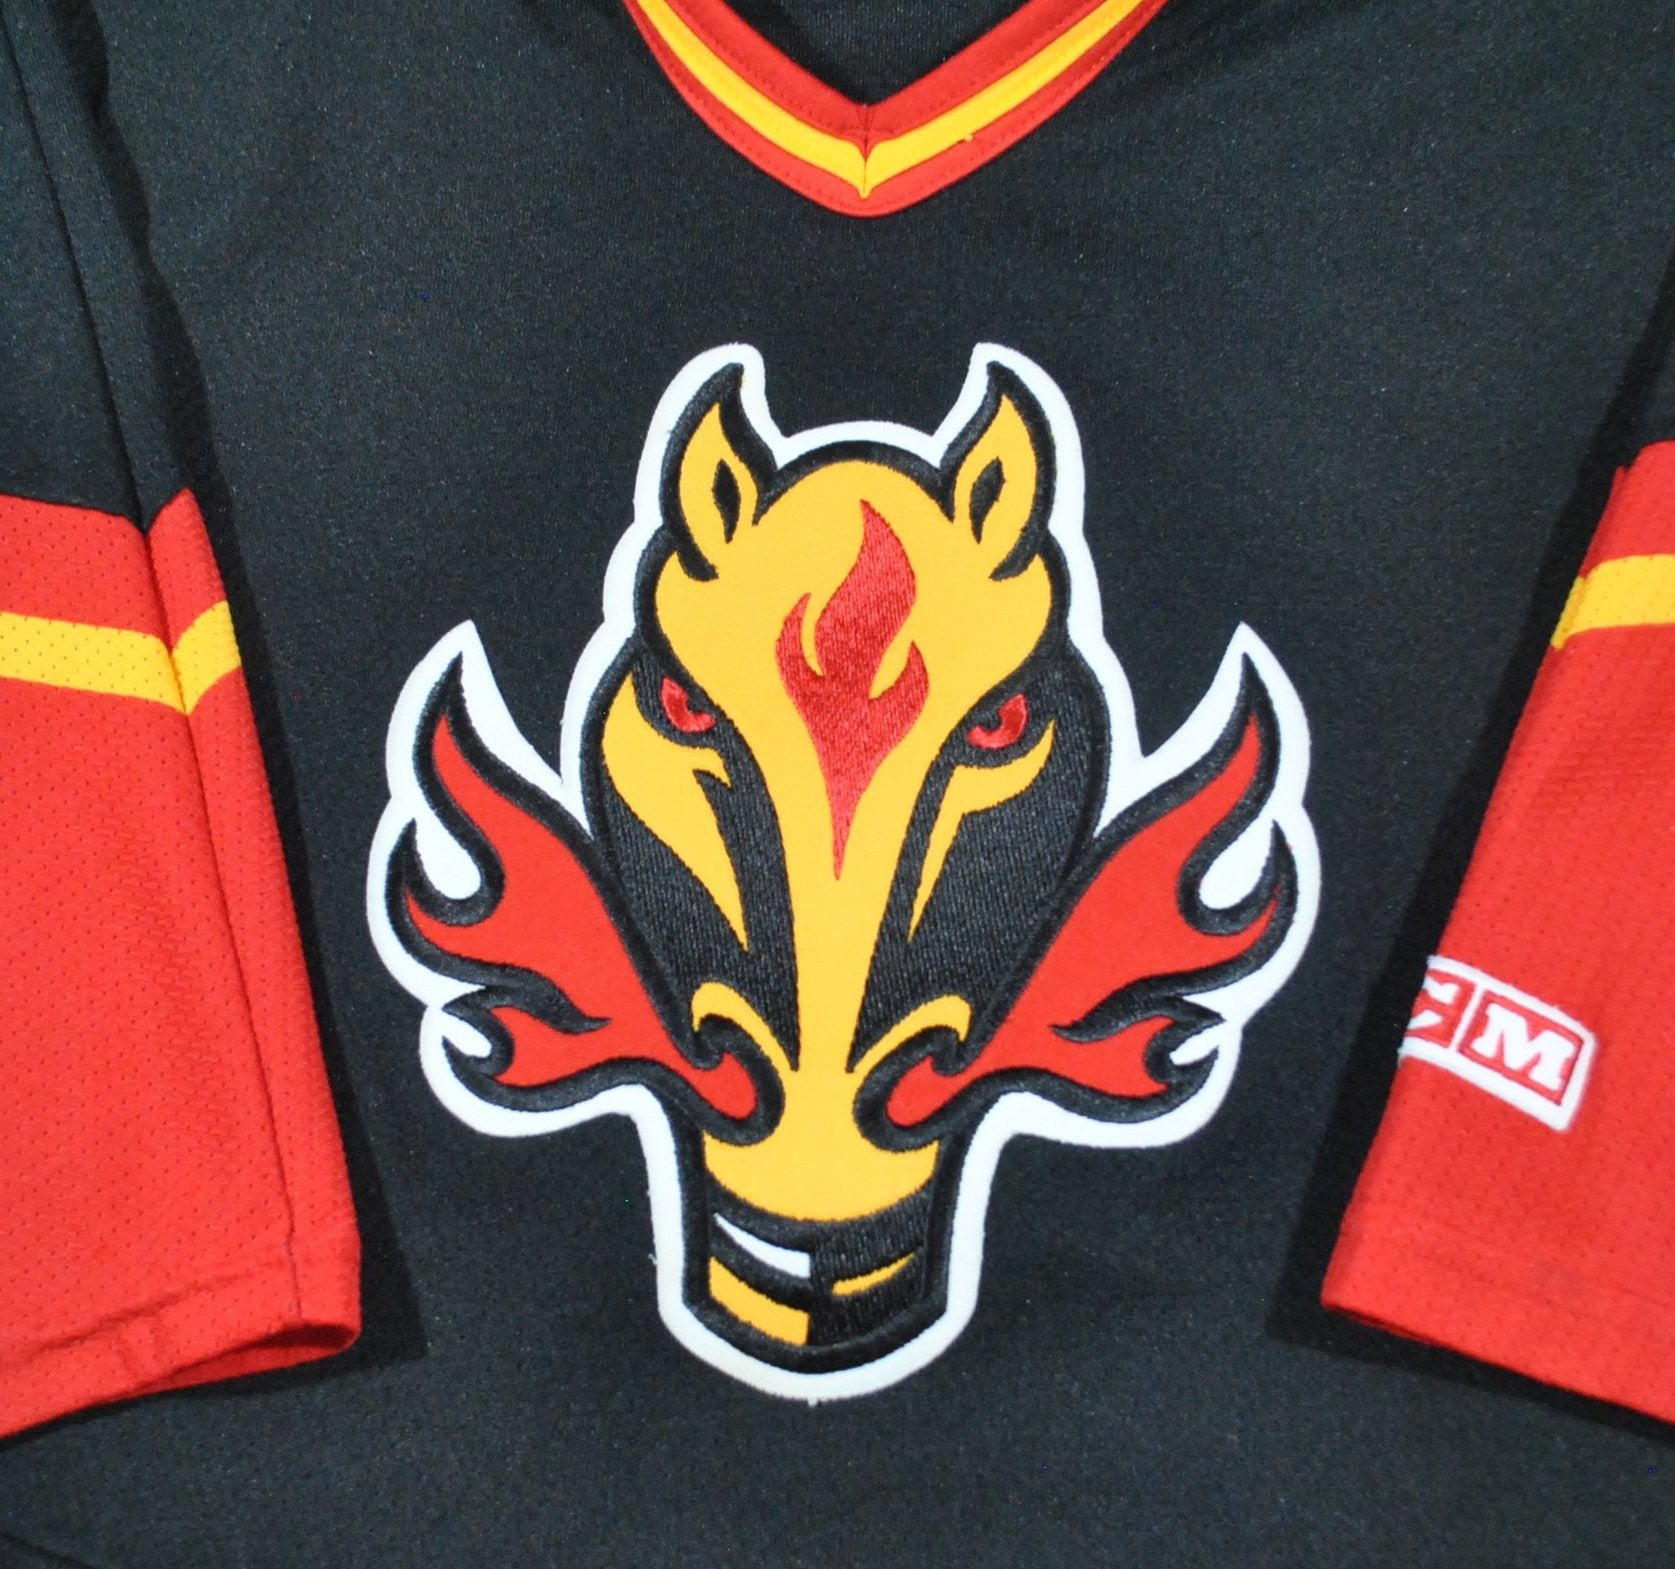 online retailer 2fb32 23dbc Vintage Calgary Flames Jersey Size Youth Large